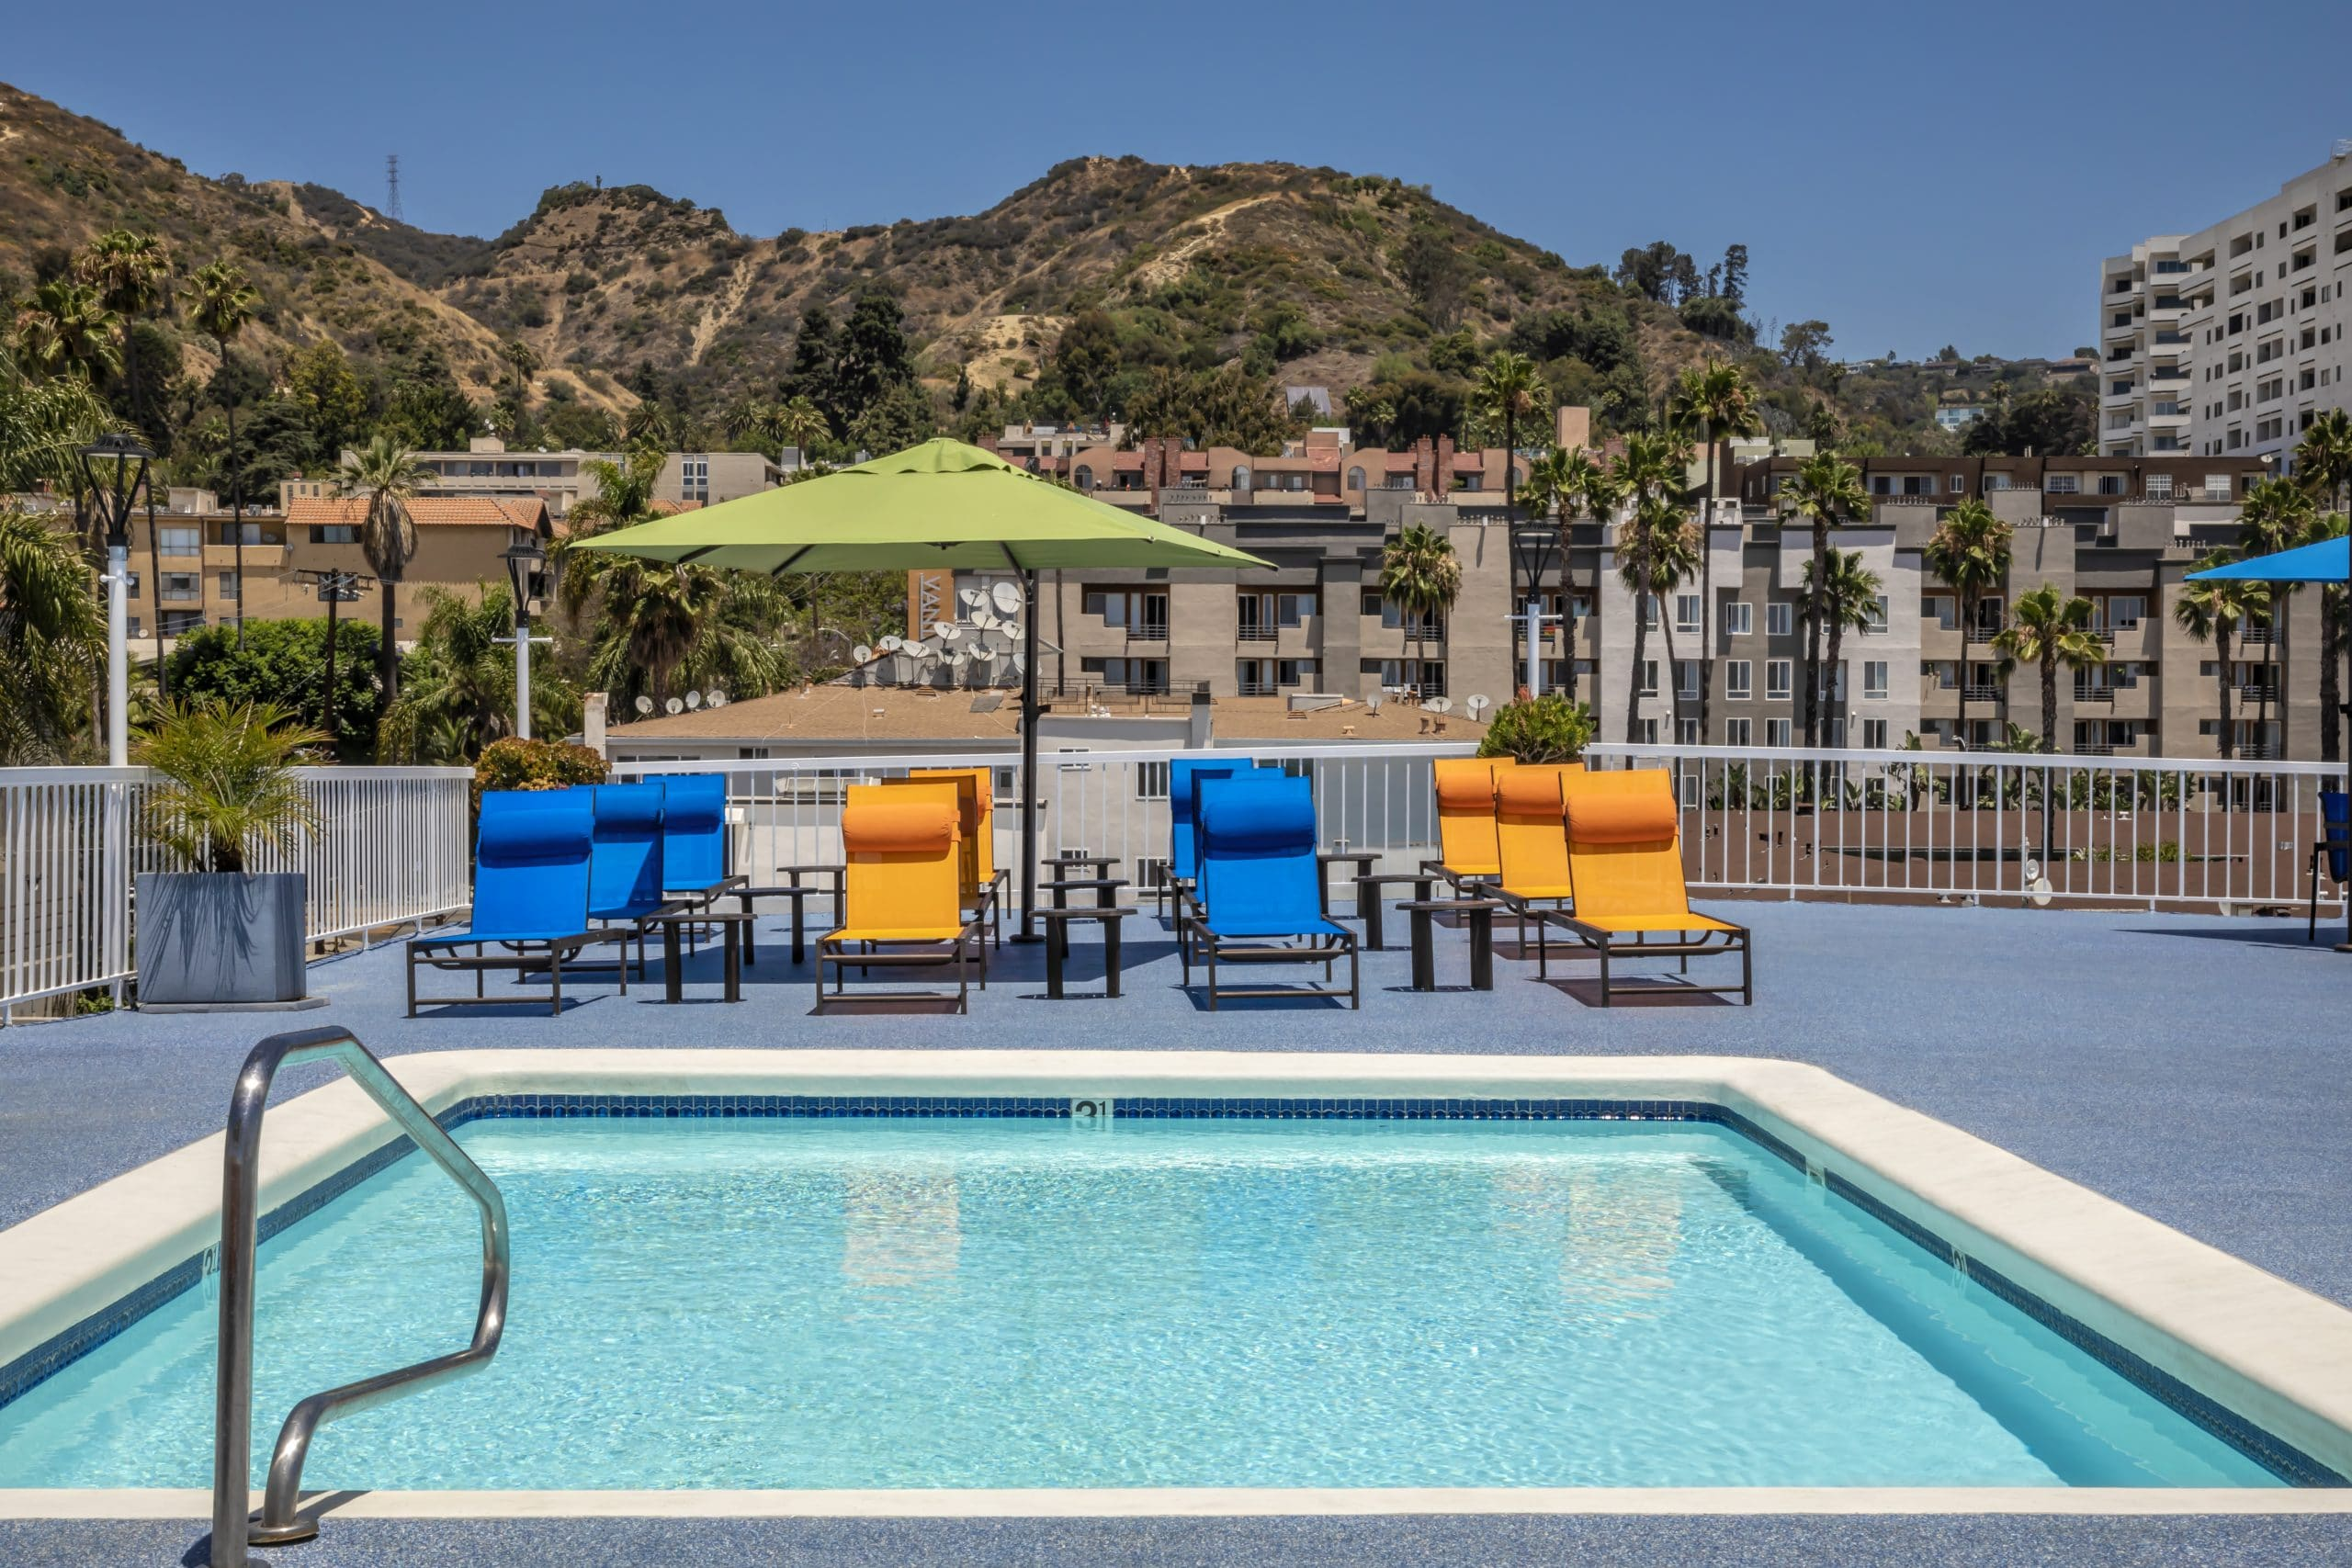 Apartments in Hollywood, CA - Rooftop Pool and Patio Area with Lounge